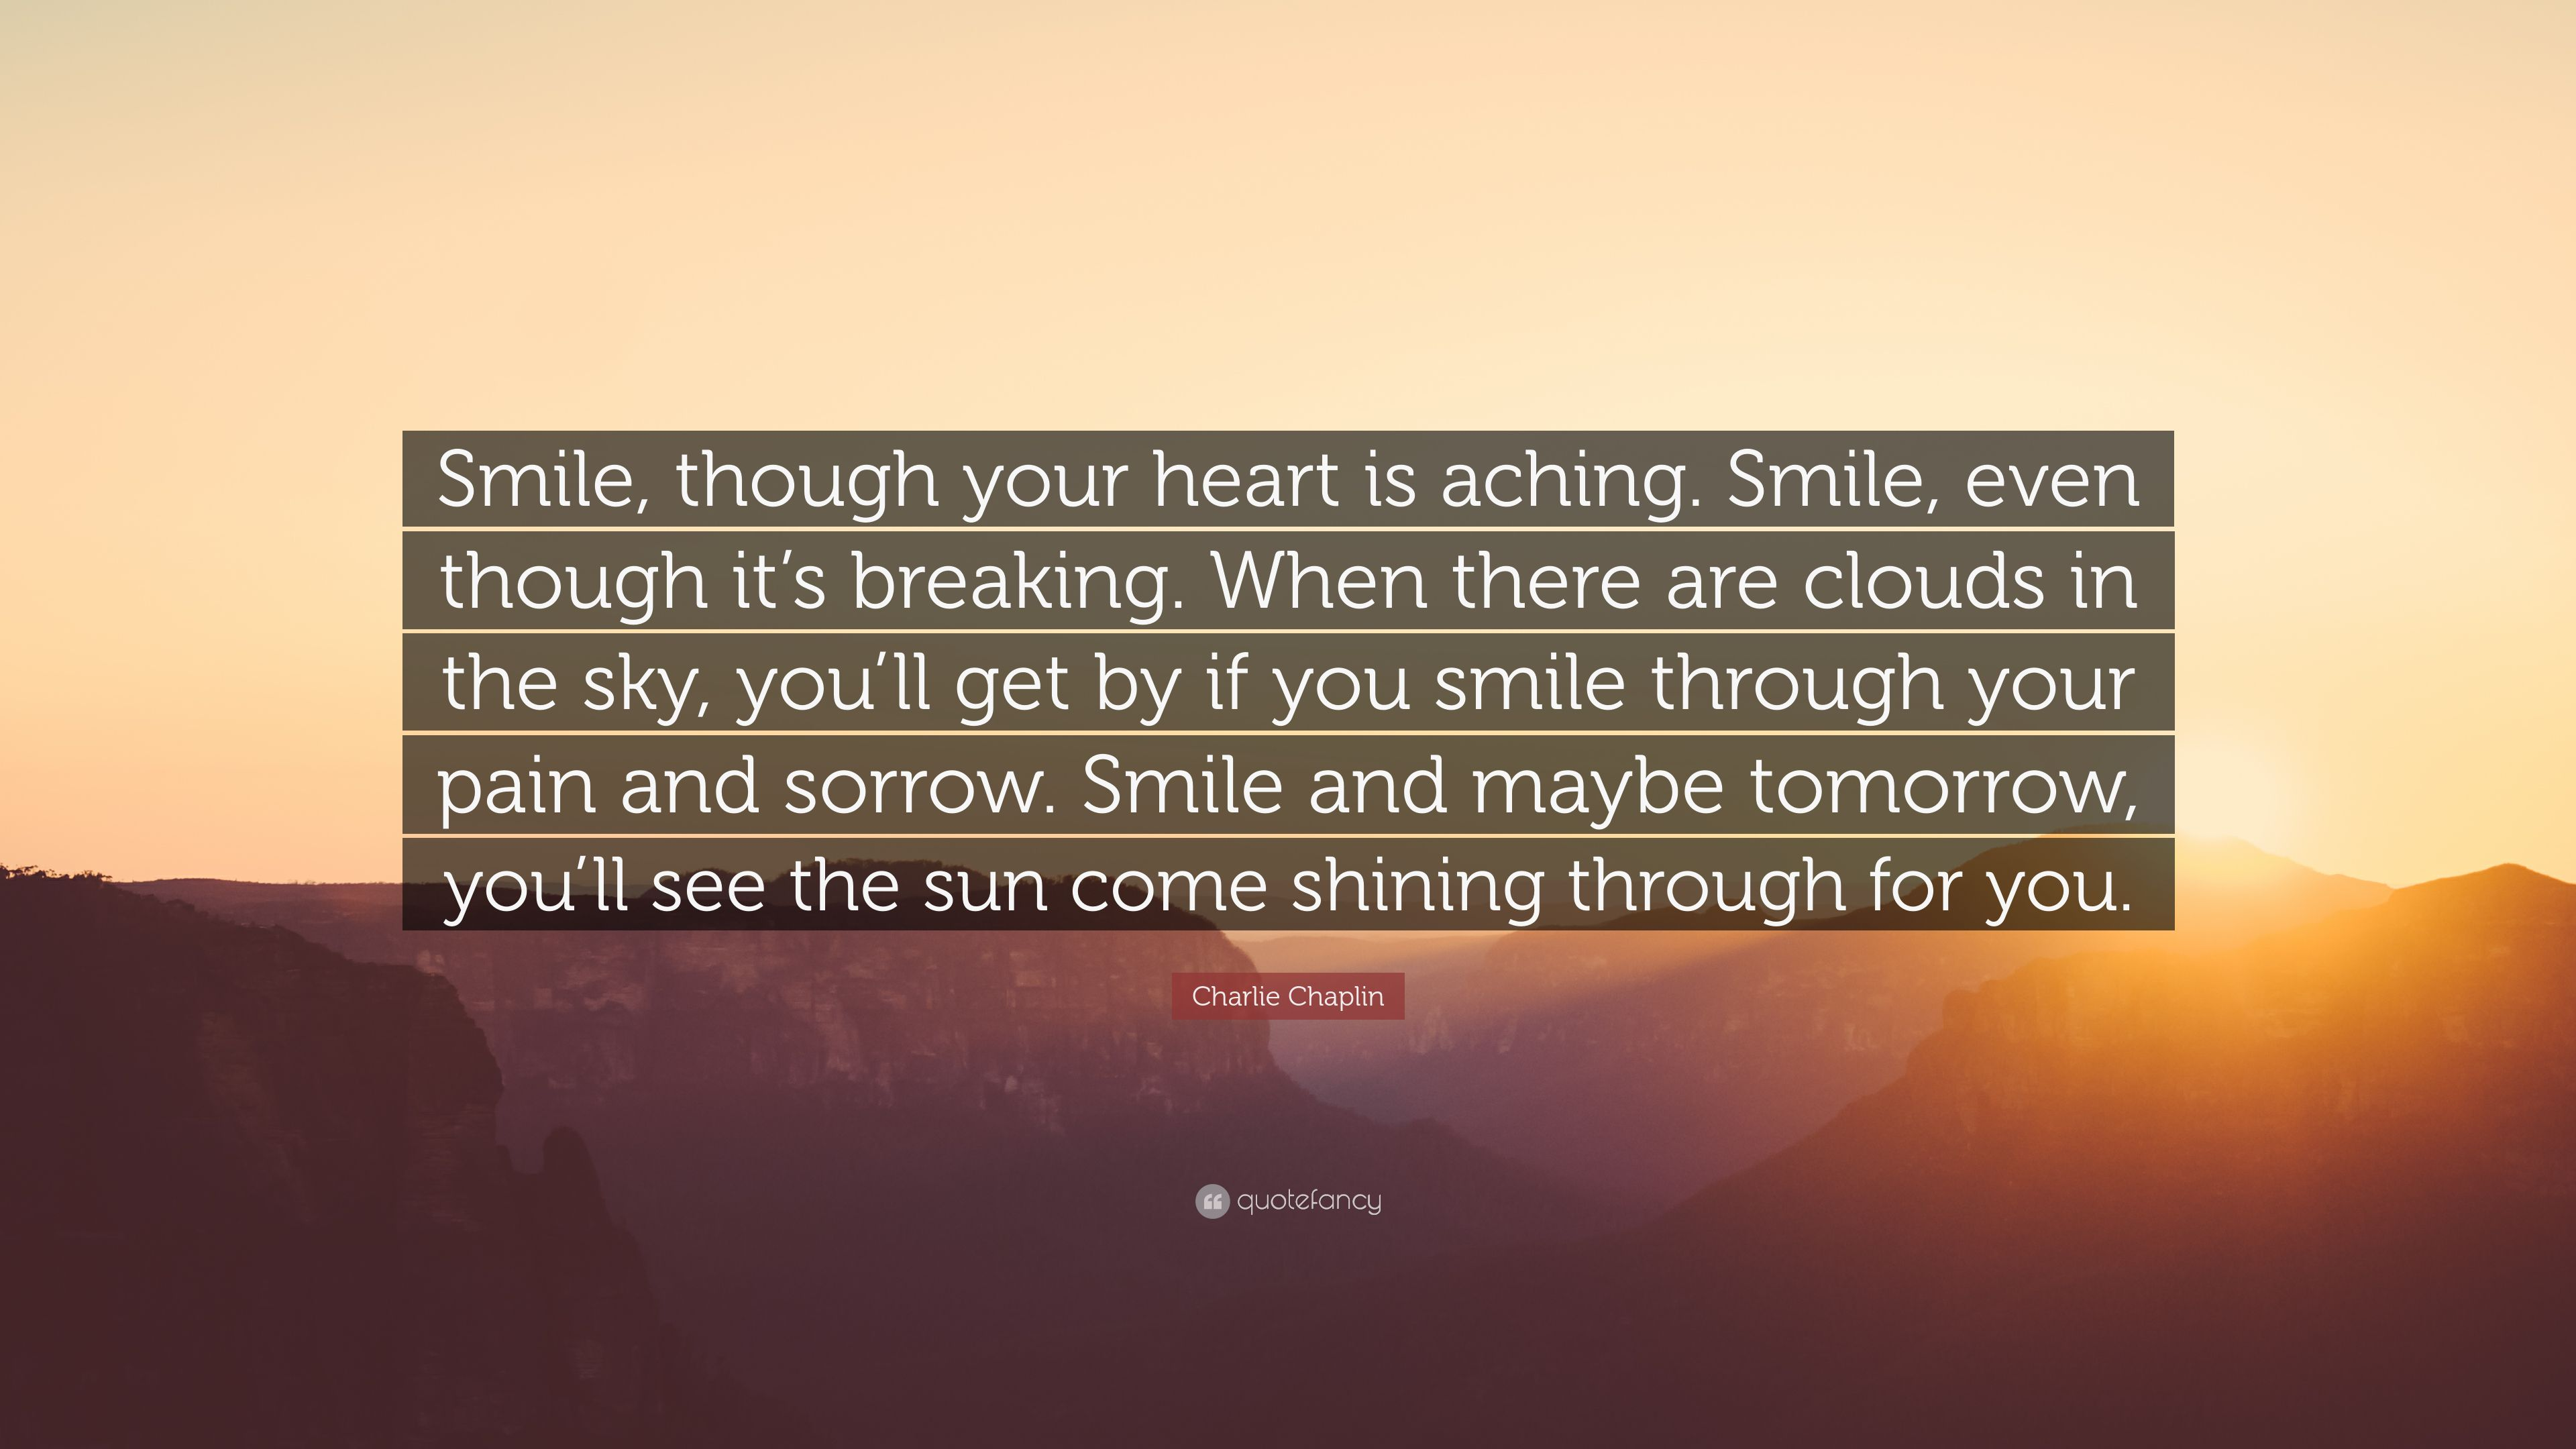 Heart Breaking Quotes Wallpapers Charlie Chaplin Quote Smile Though Your Heart Is Aching